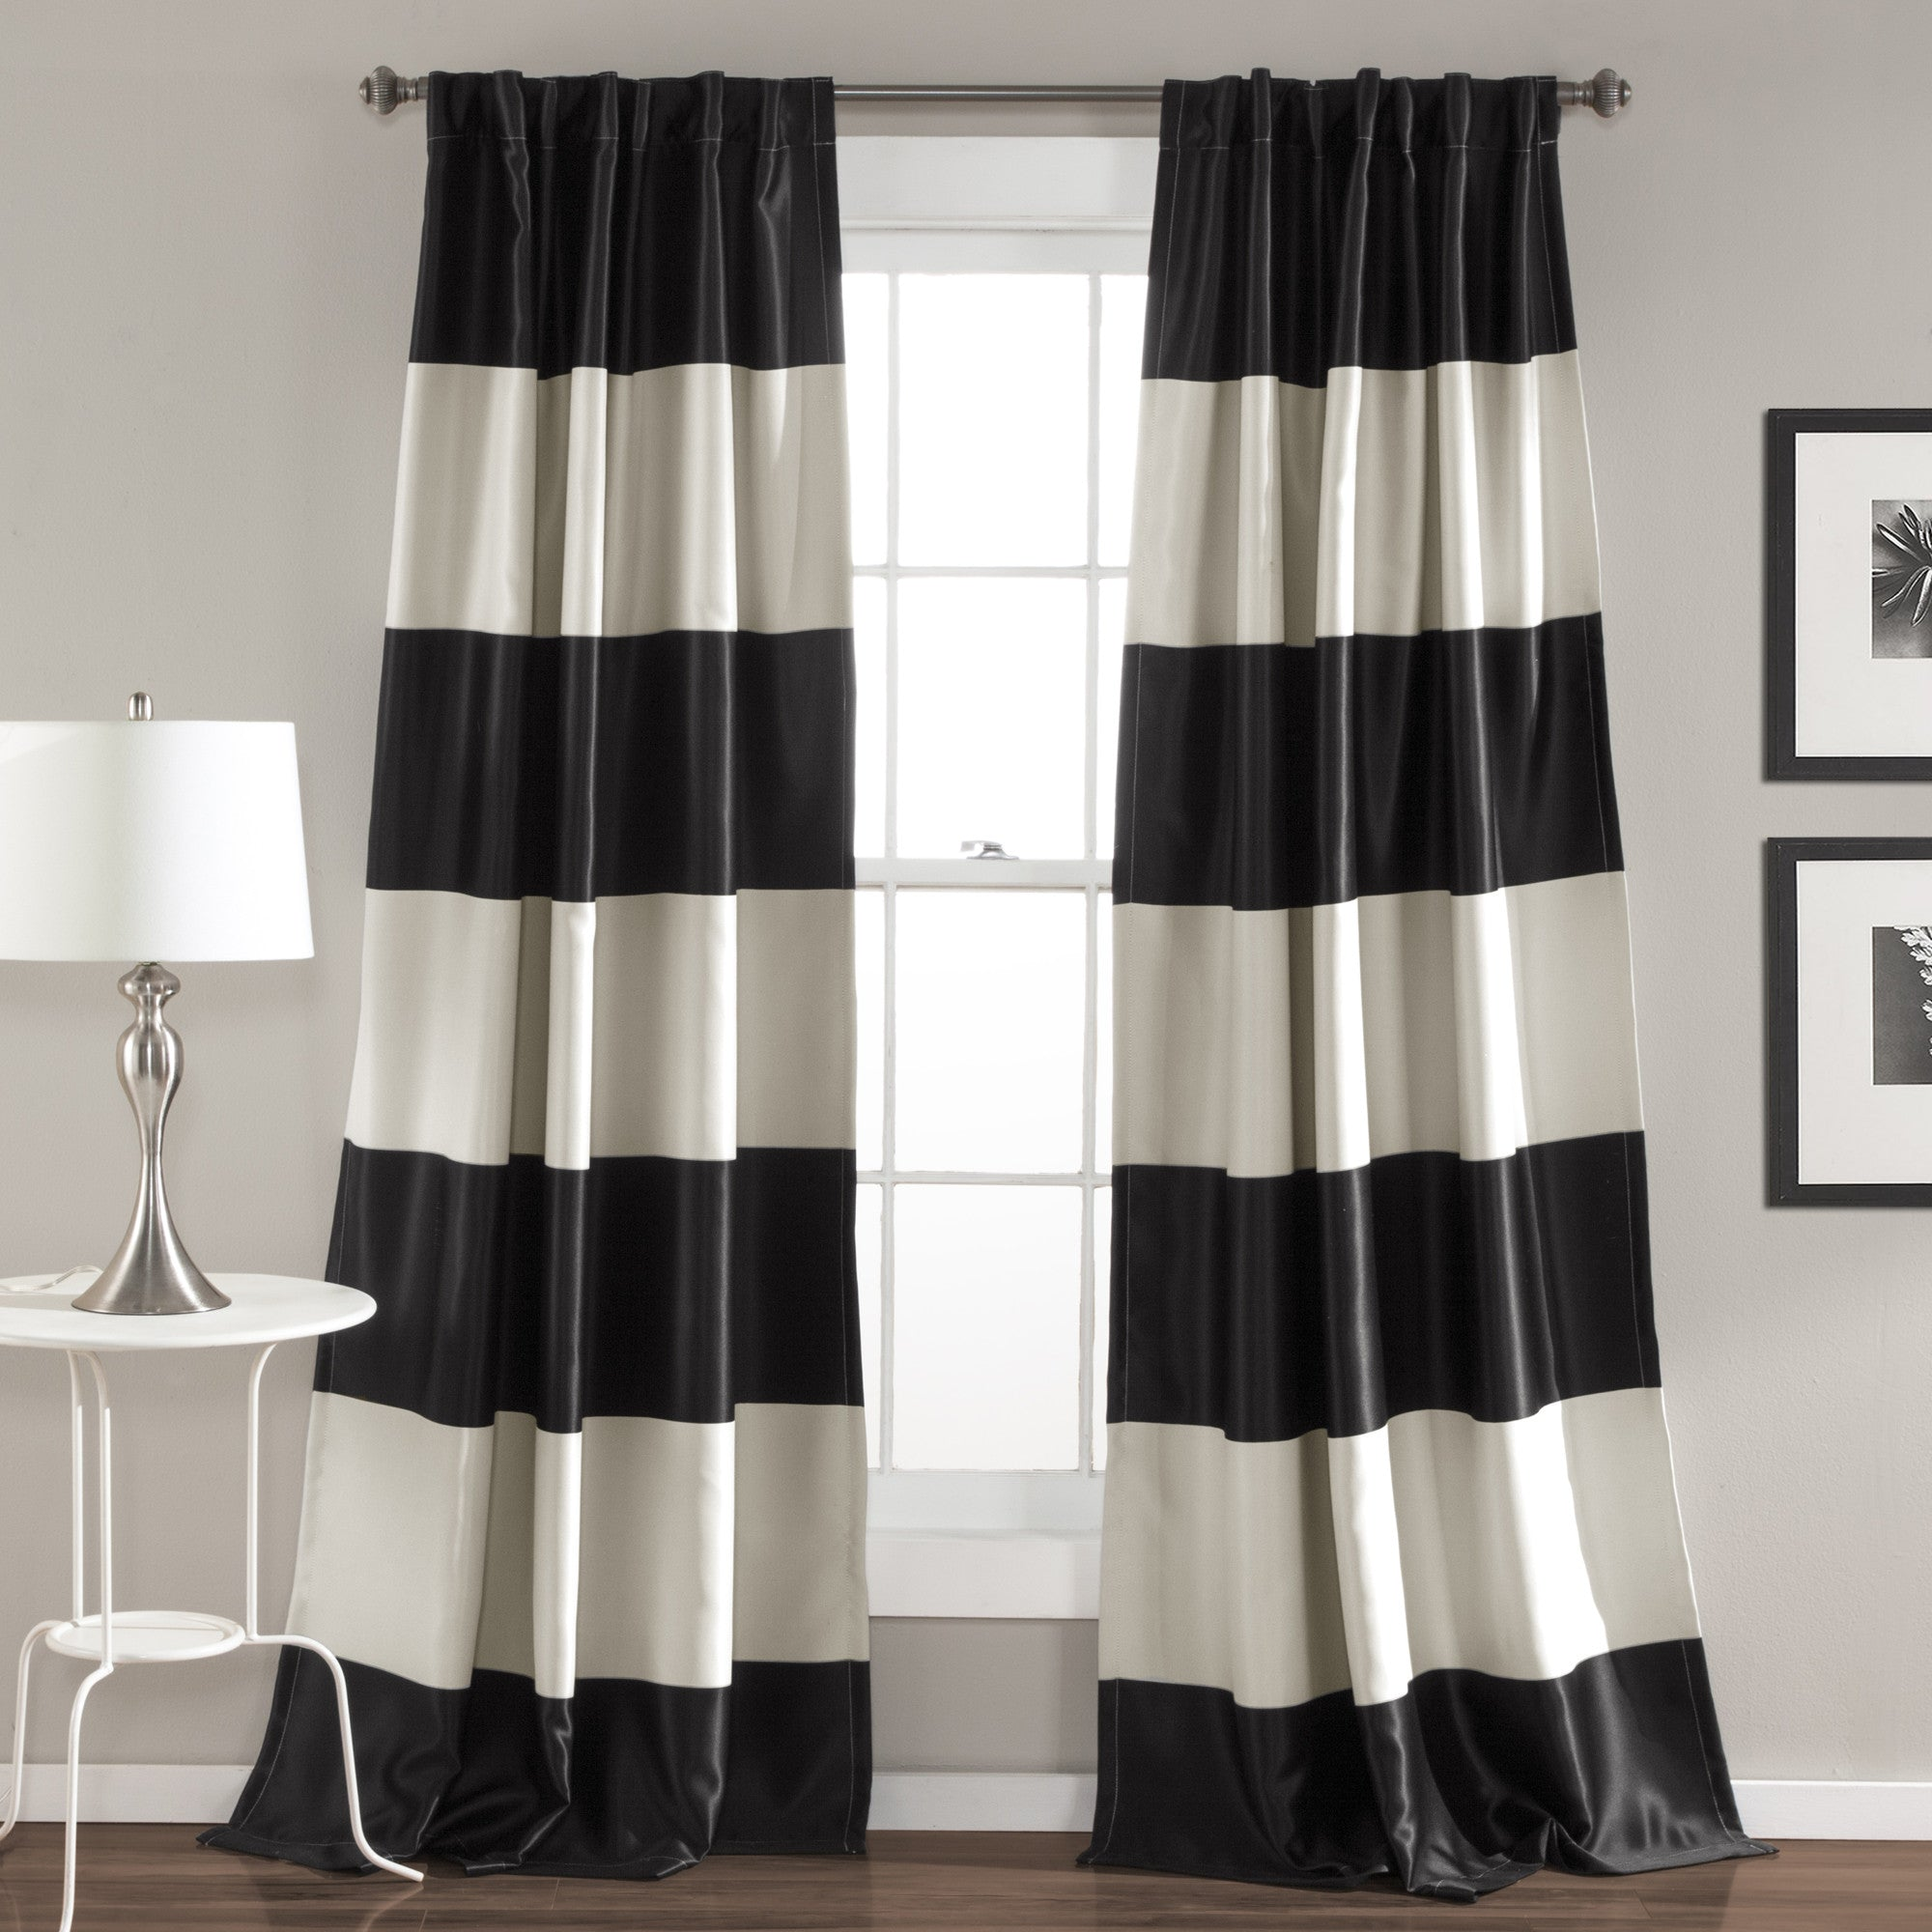 size cheap cath bedding uk curtains dark with bedeck sets purple double girls pink duvets floral green matching covers maid style curtain full bedroom little duvet brown white ebay luxury cotton grey set single at kidston quilt of cover and ikea